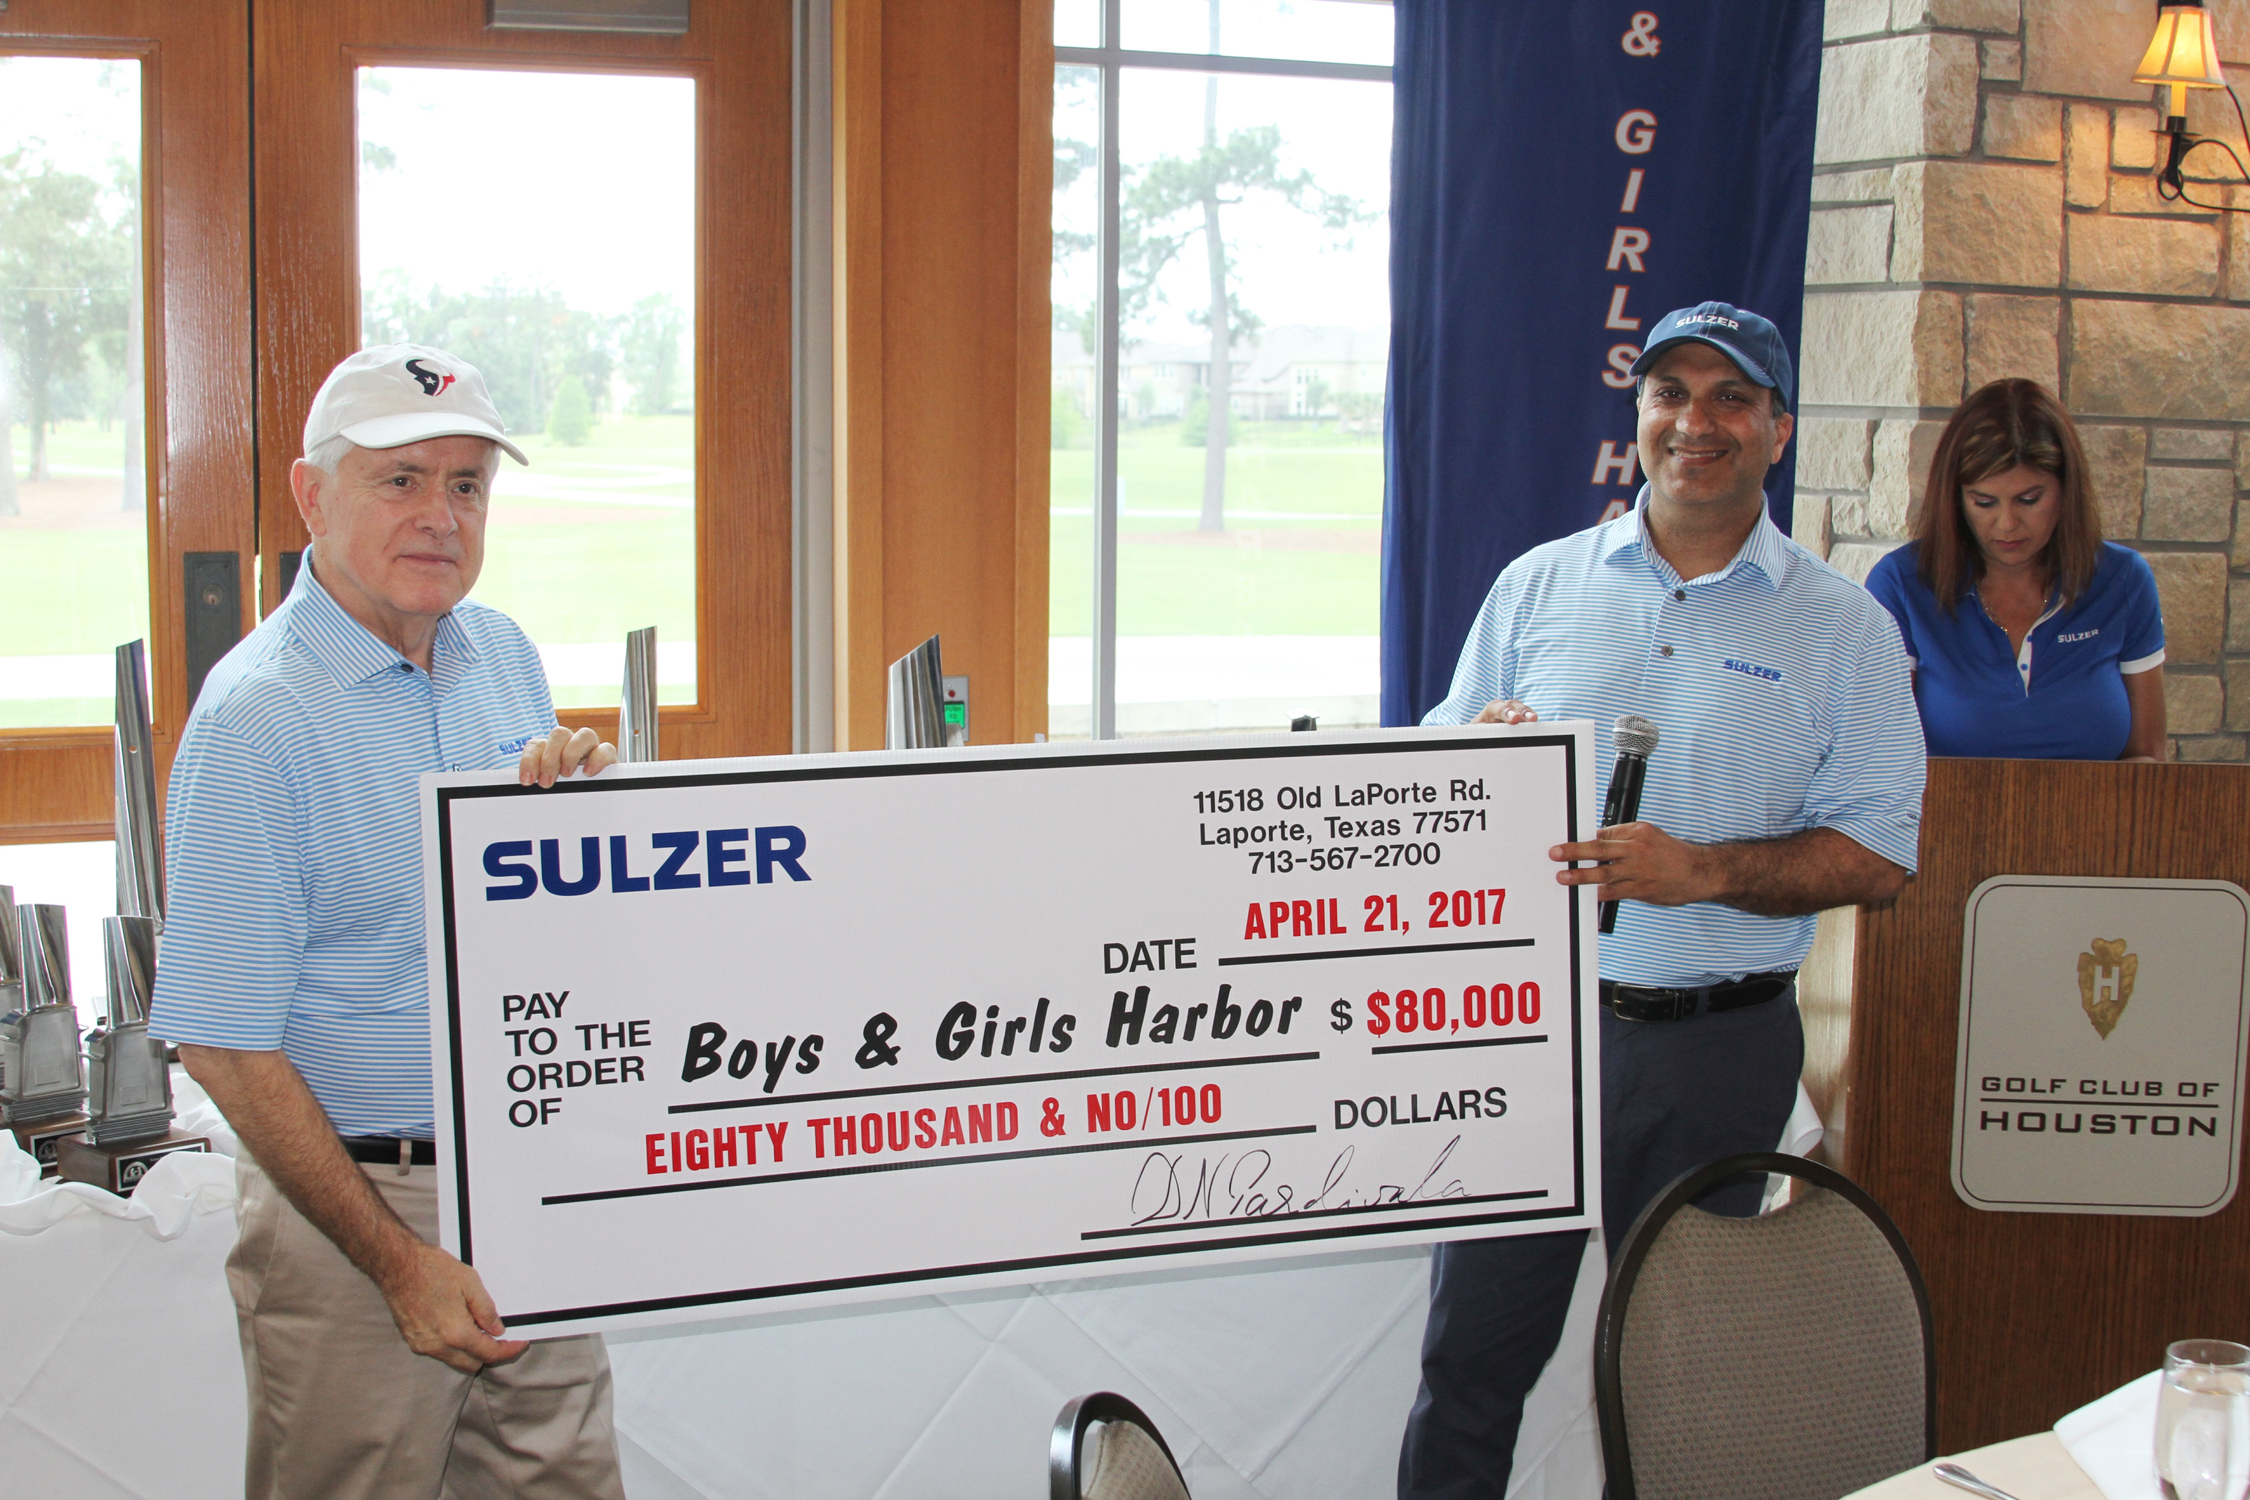 30th Annual Hack Attack Golf Tournament Benefiting the Boys & Girls Harbor in Honor of the Child Abuse Prevention Month